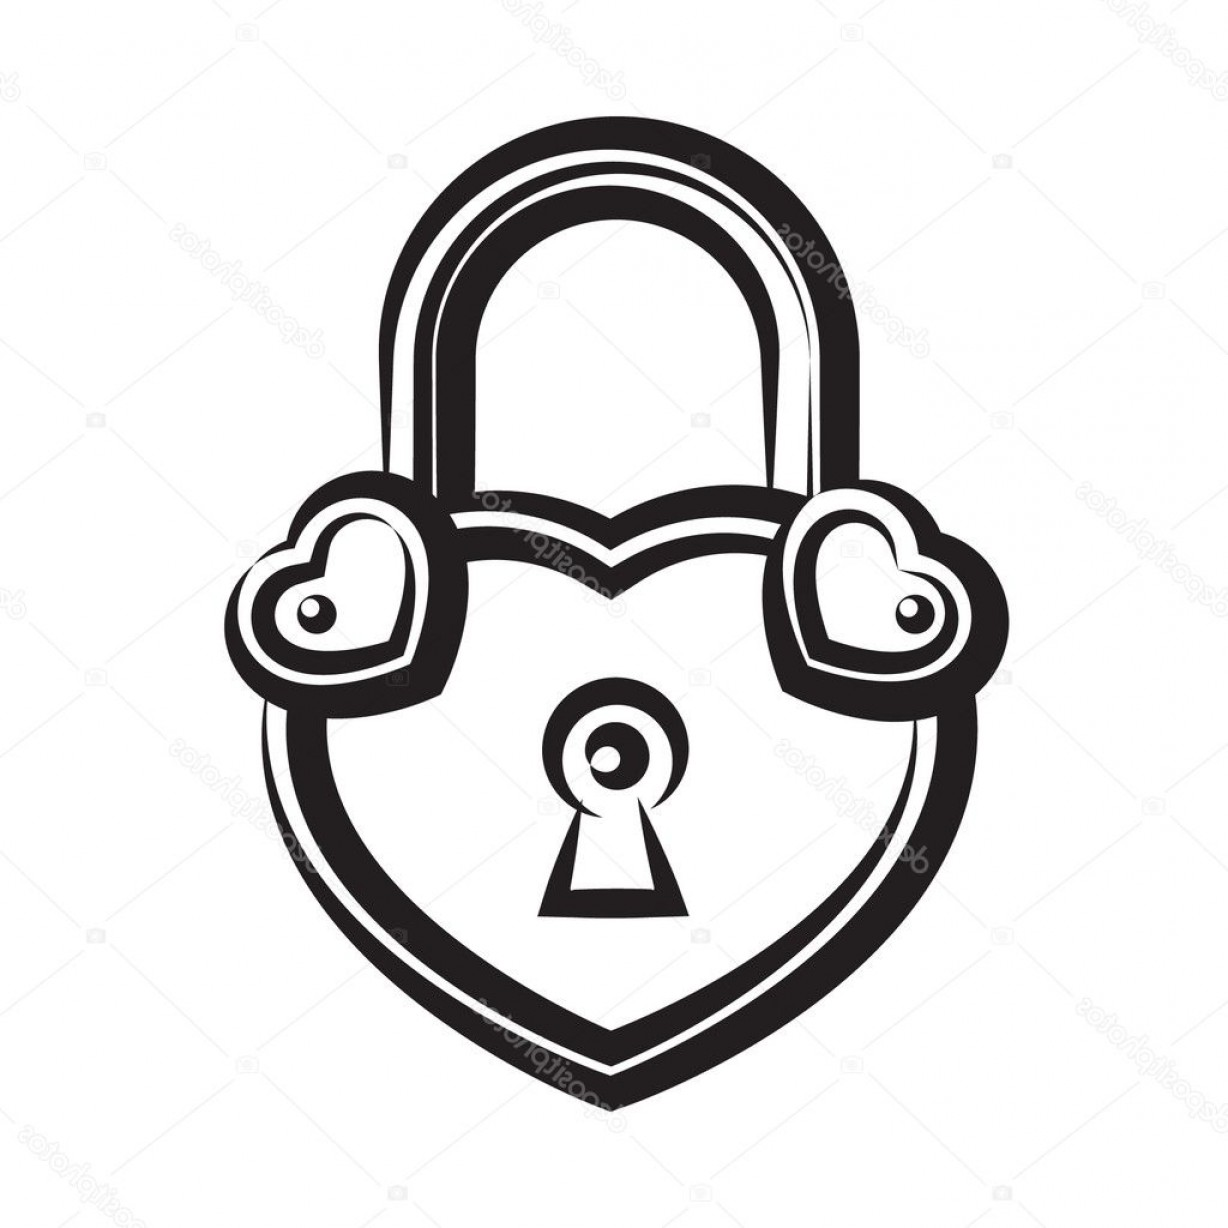 Heart Lock Vector: Stock Illustration Lock Icon In Heart Shaped